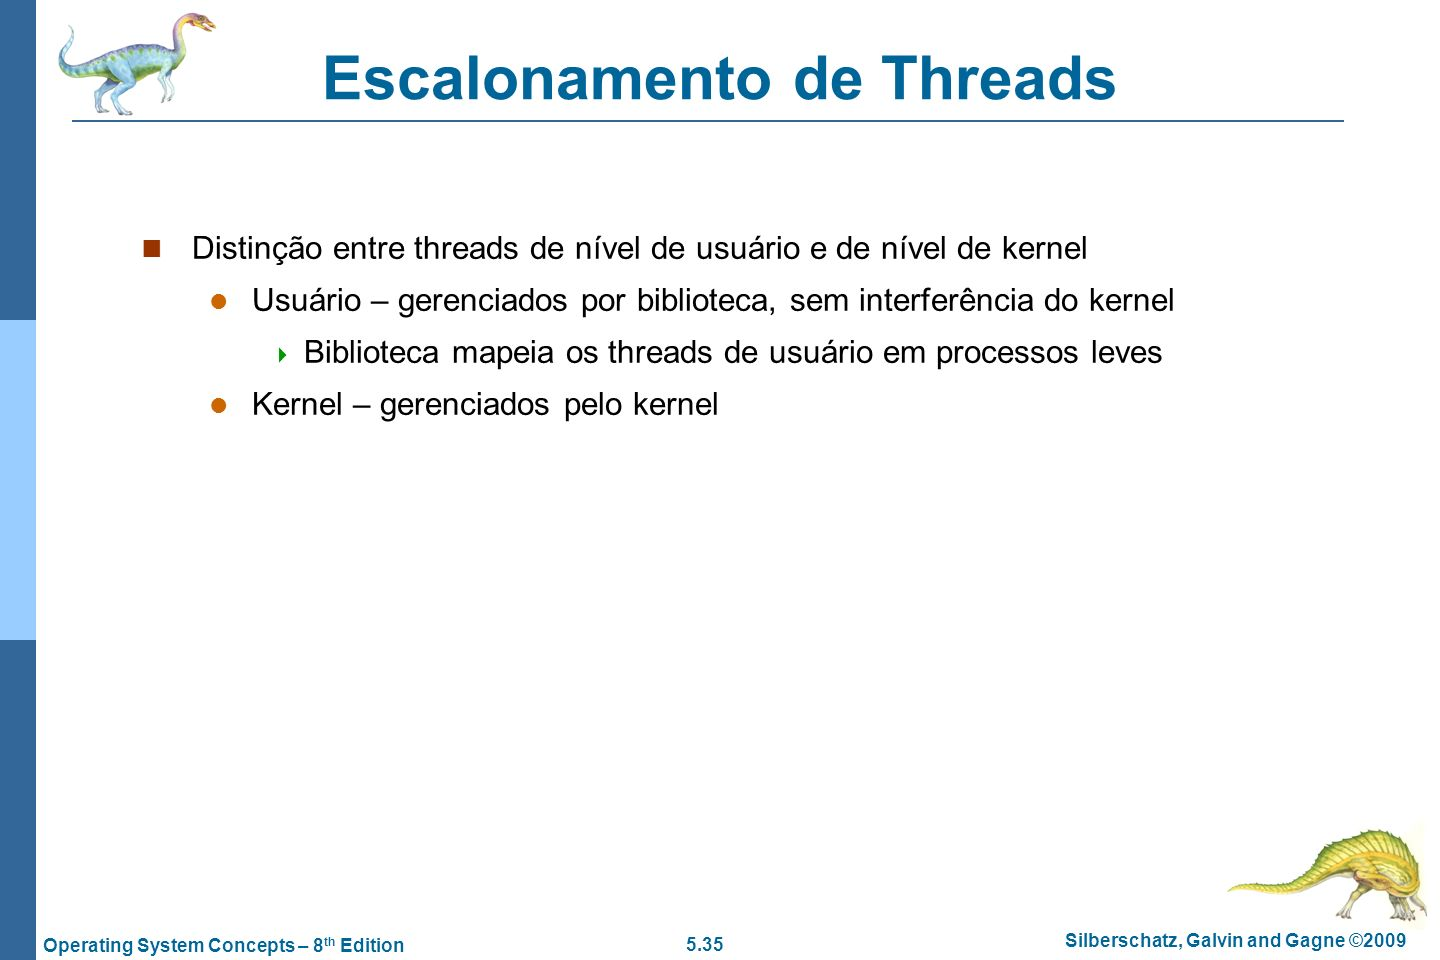 Escalonamento de Threads